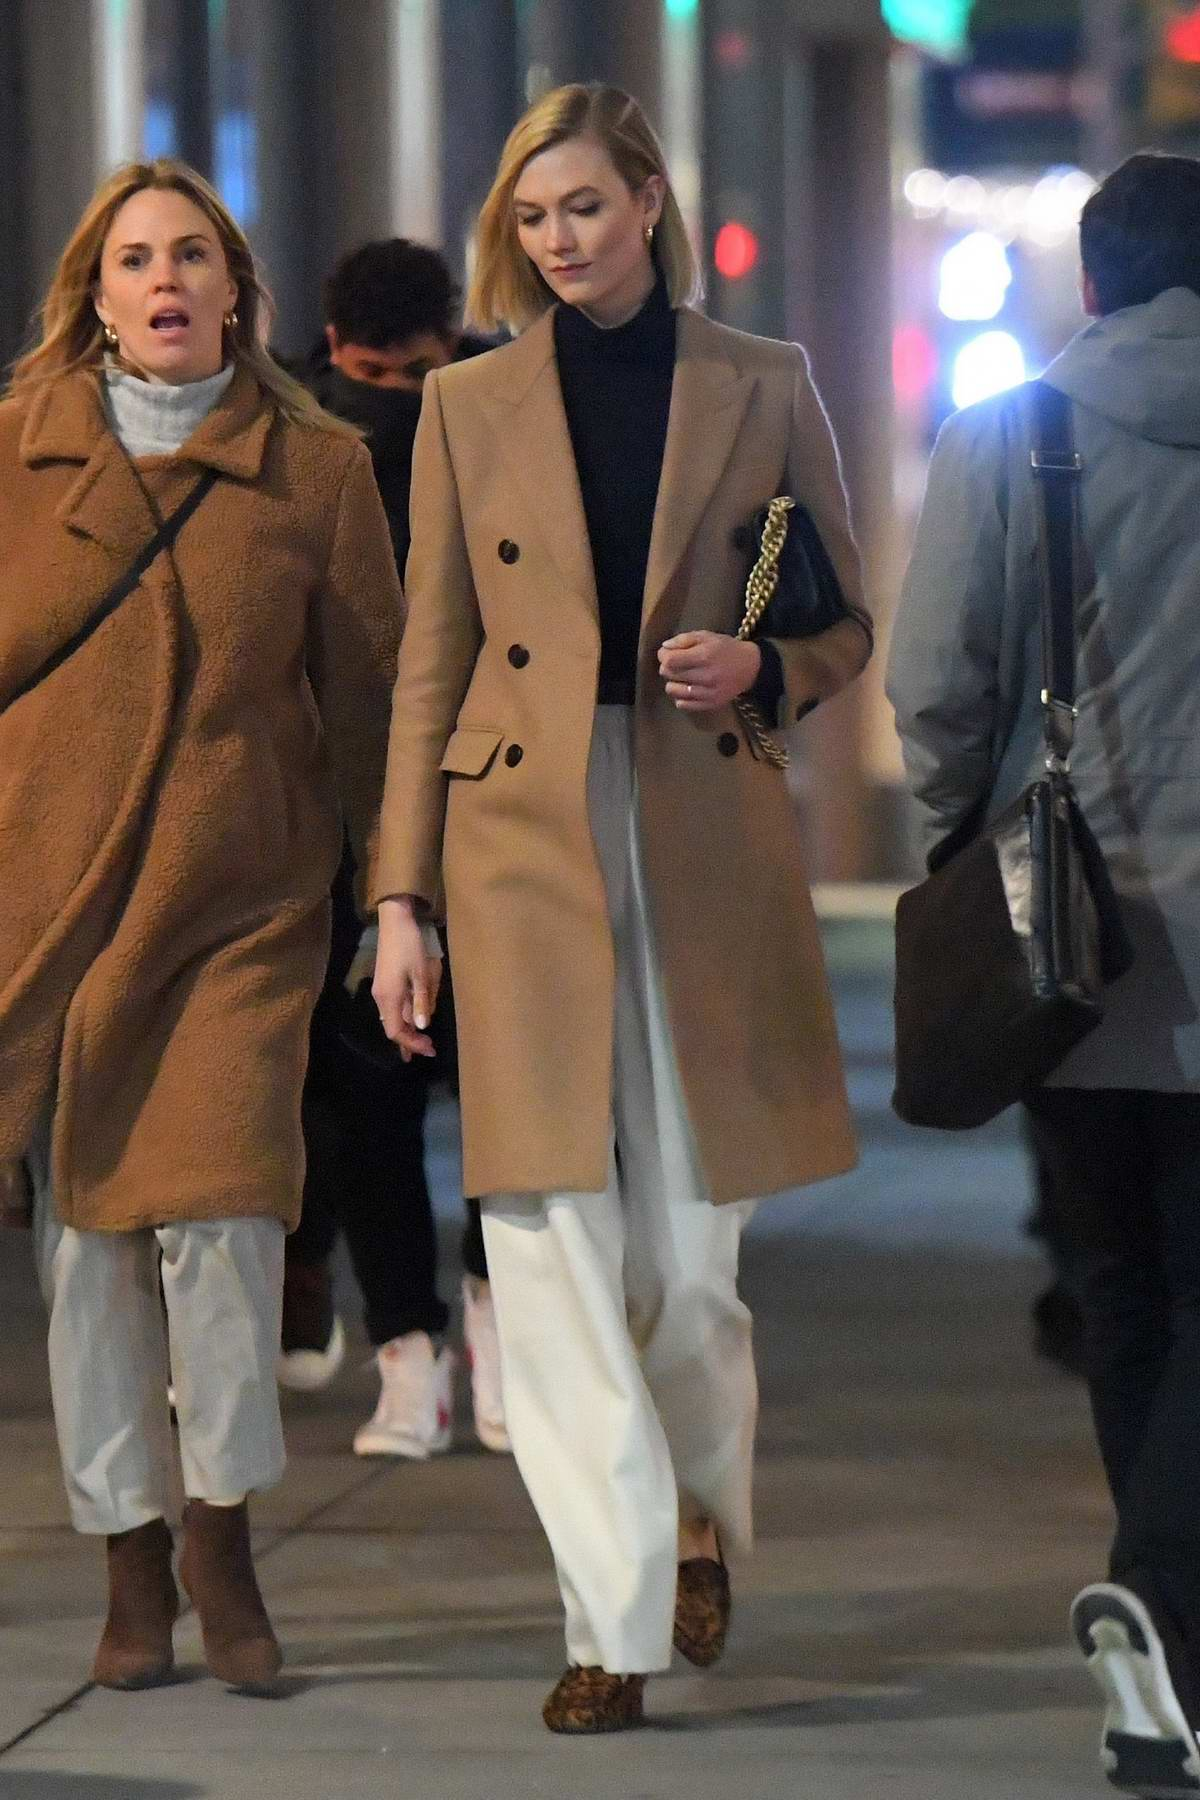 Karlie Kloss looks chic as she steps out for stroll with friends in New York City